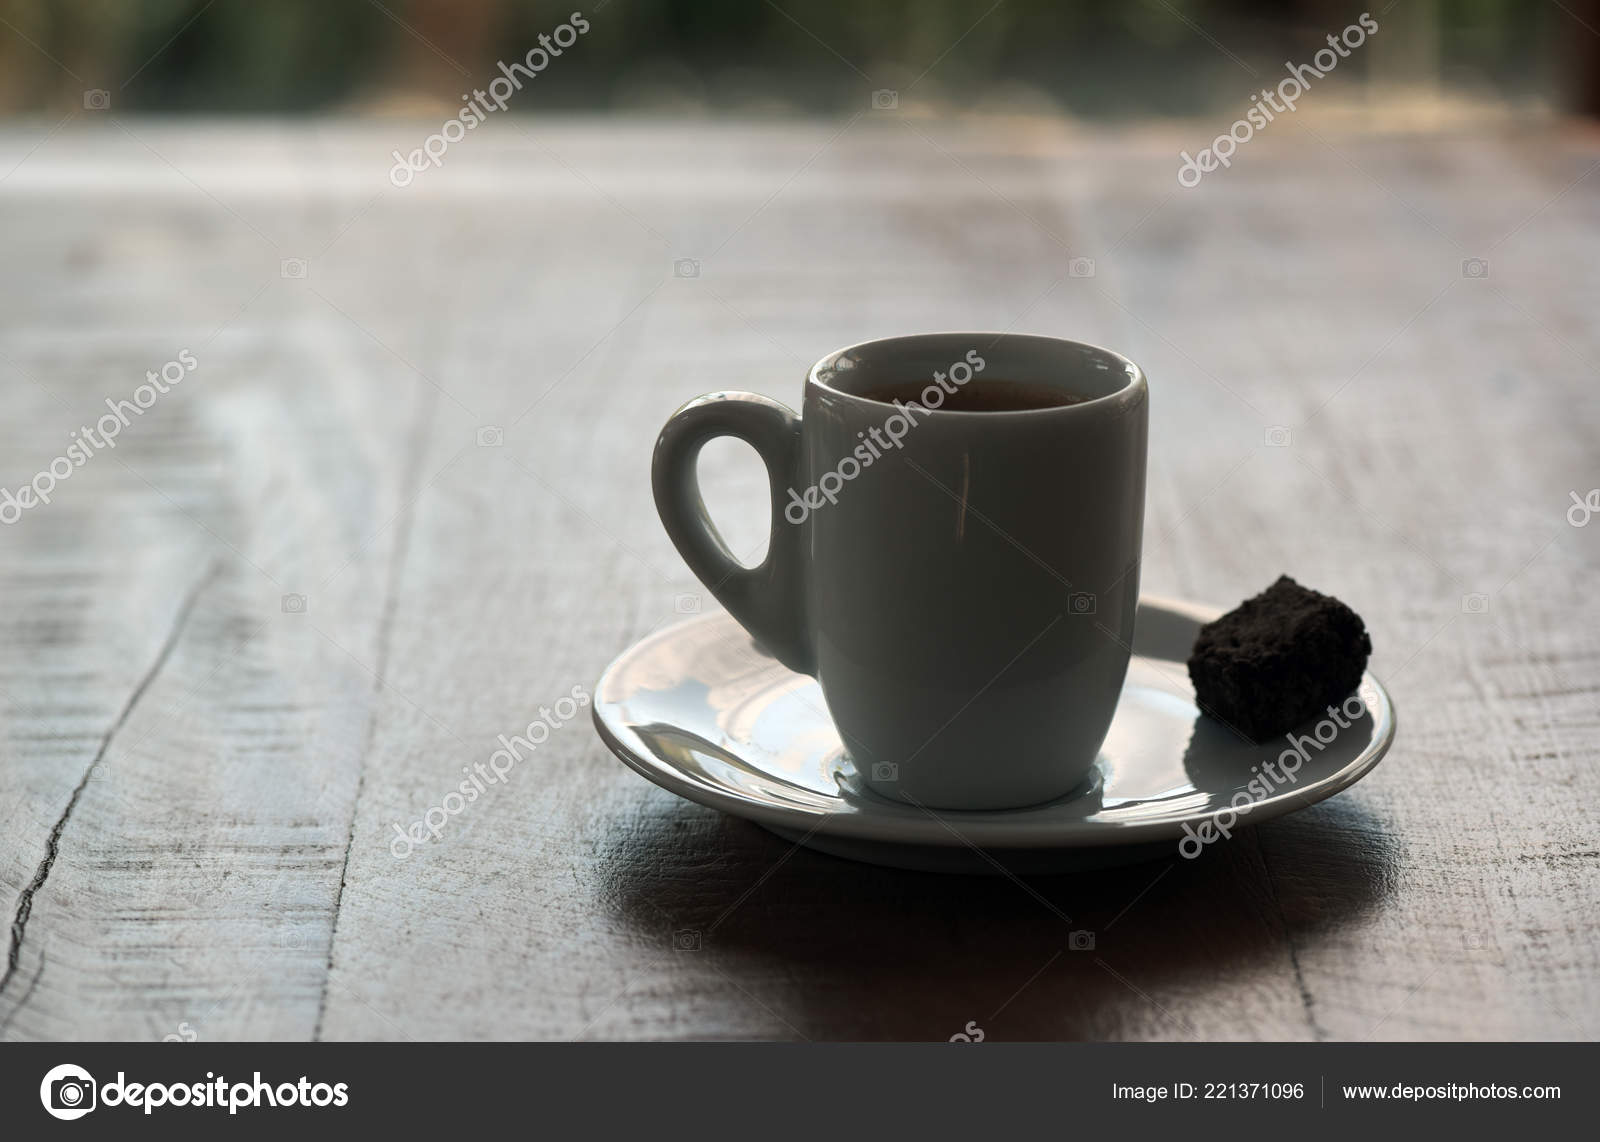 Small Coffee Cups And Saucers Cup Espresso Coffee Backlight Saucer Small Piece Cake Wooden Table